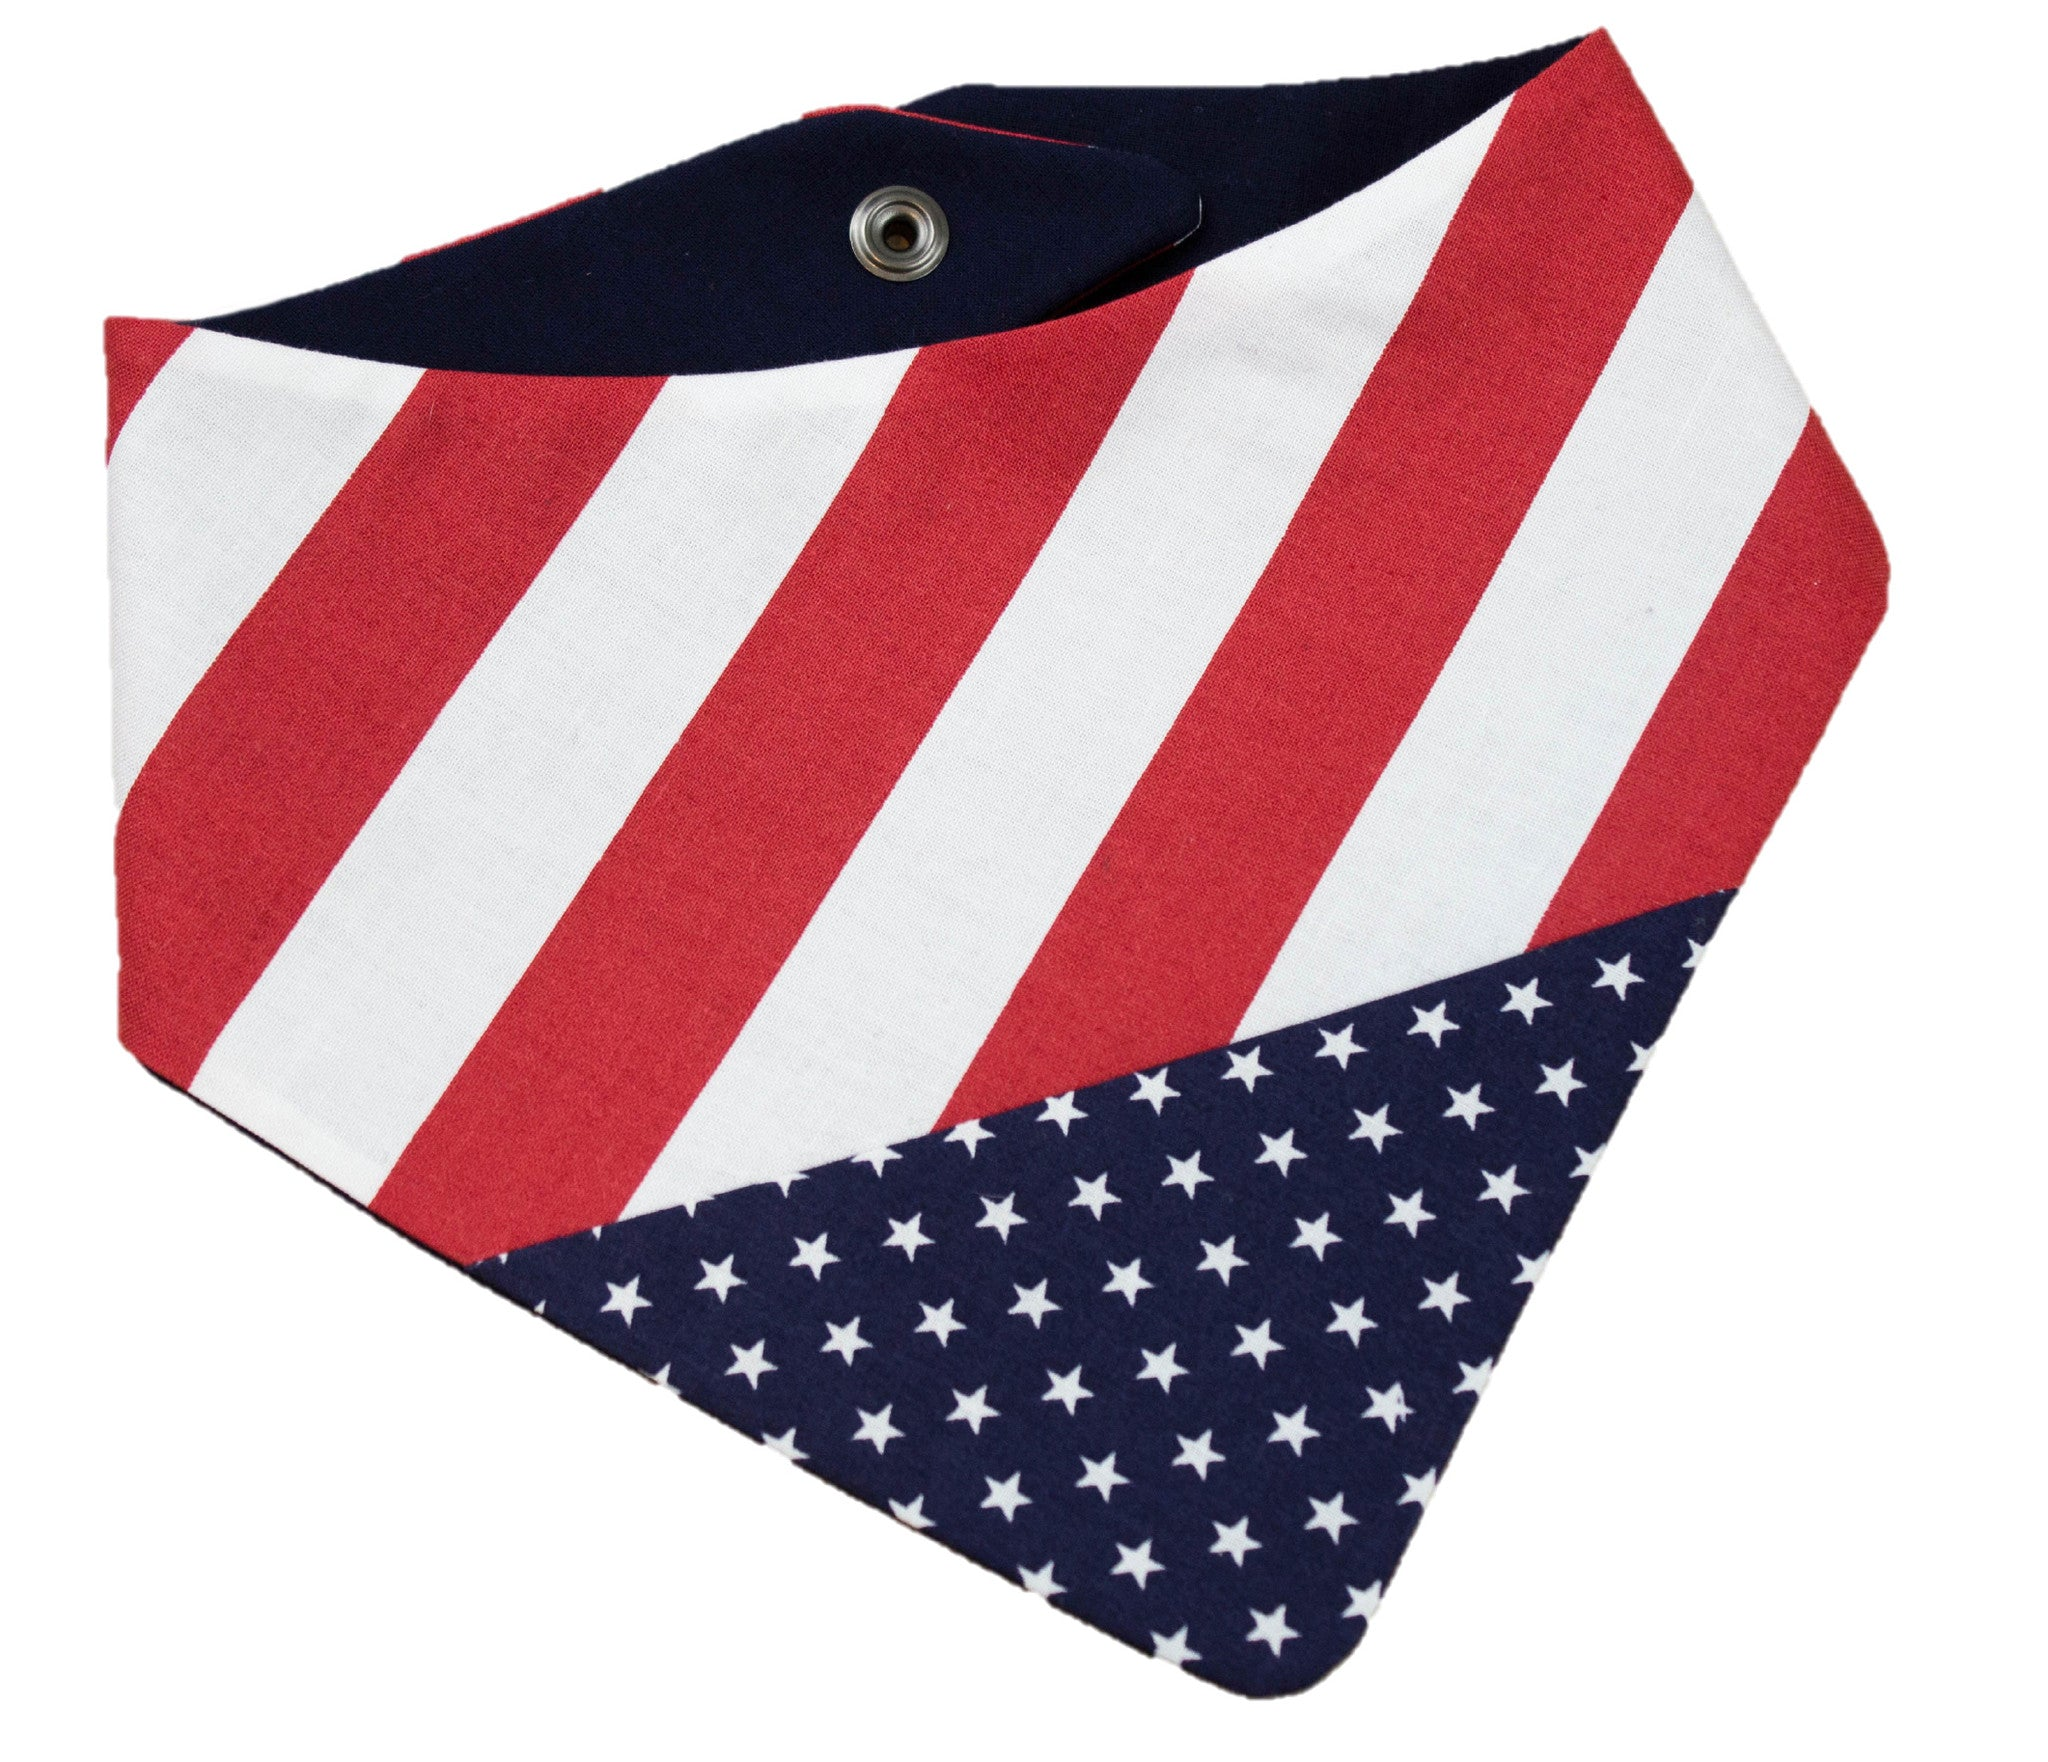 The Spangled Bandana